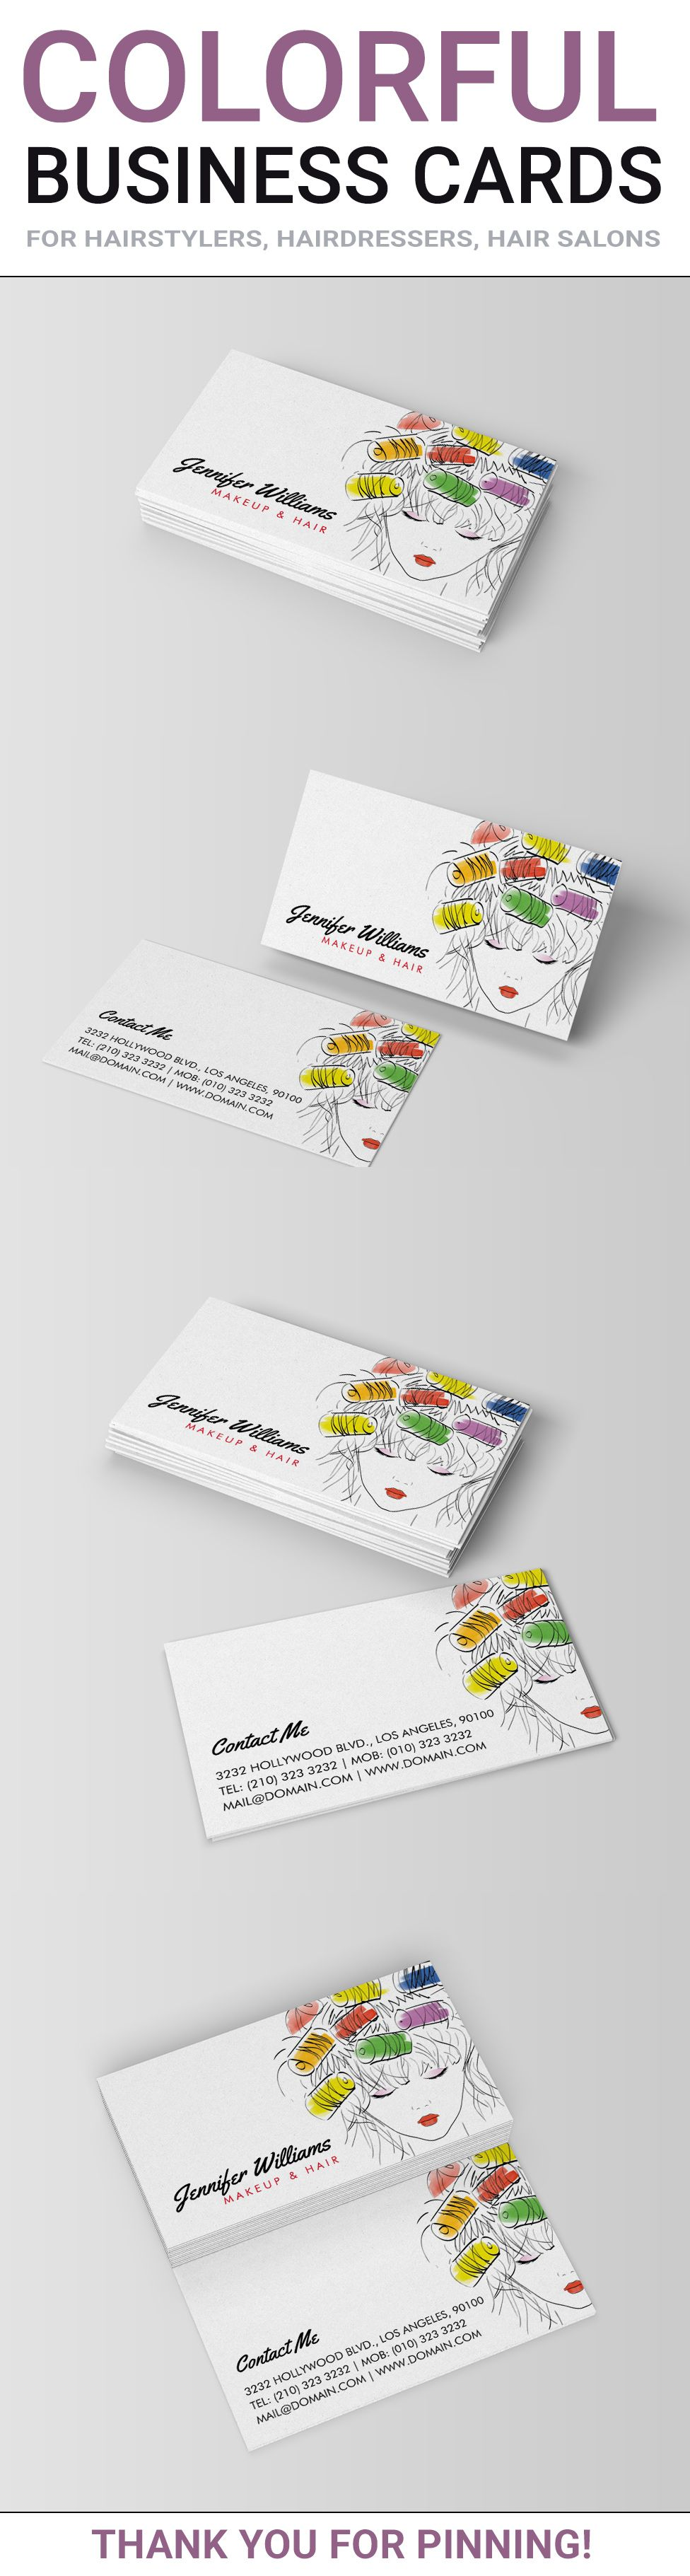 Modern illustrated hair and makeup business cards, ideal for ...